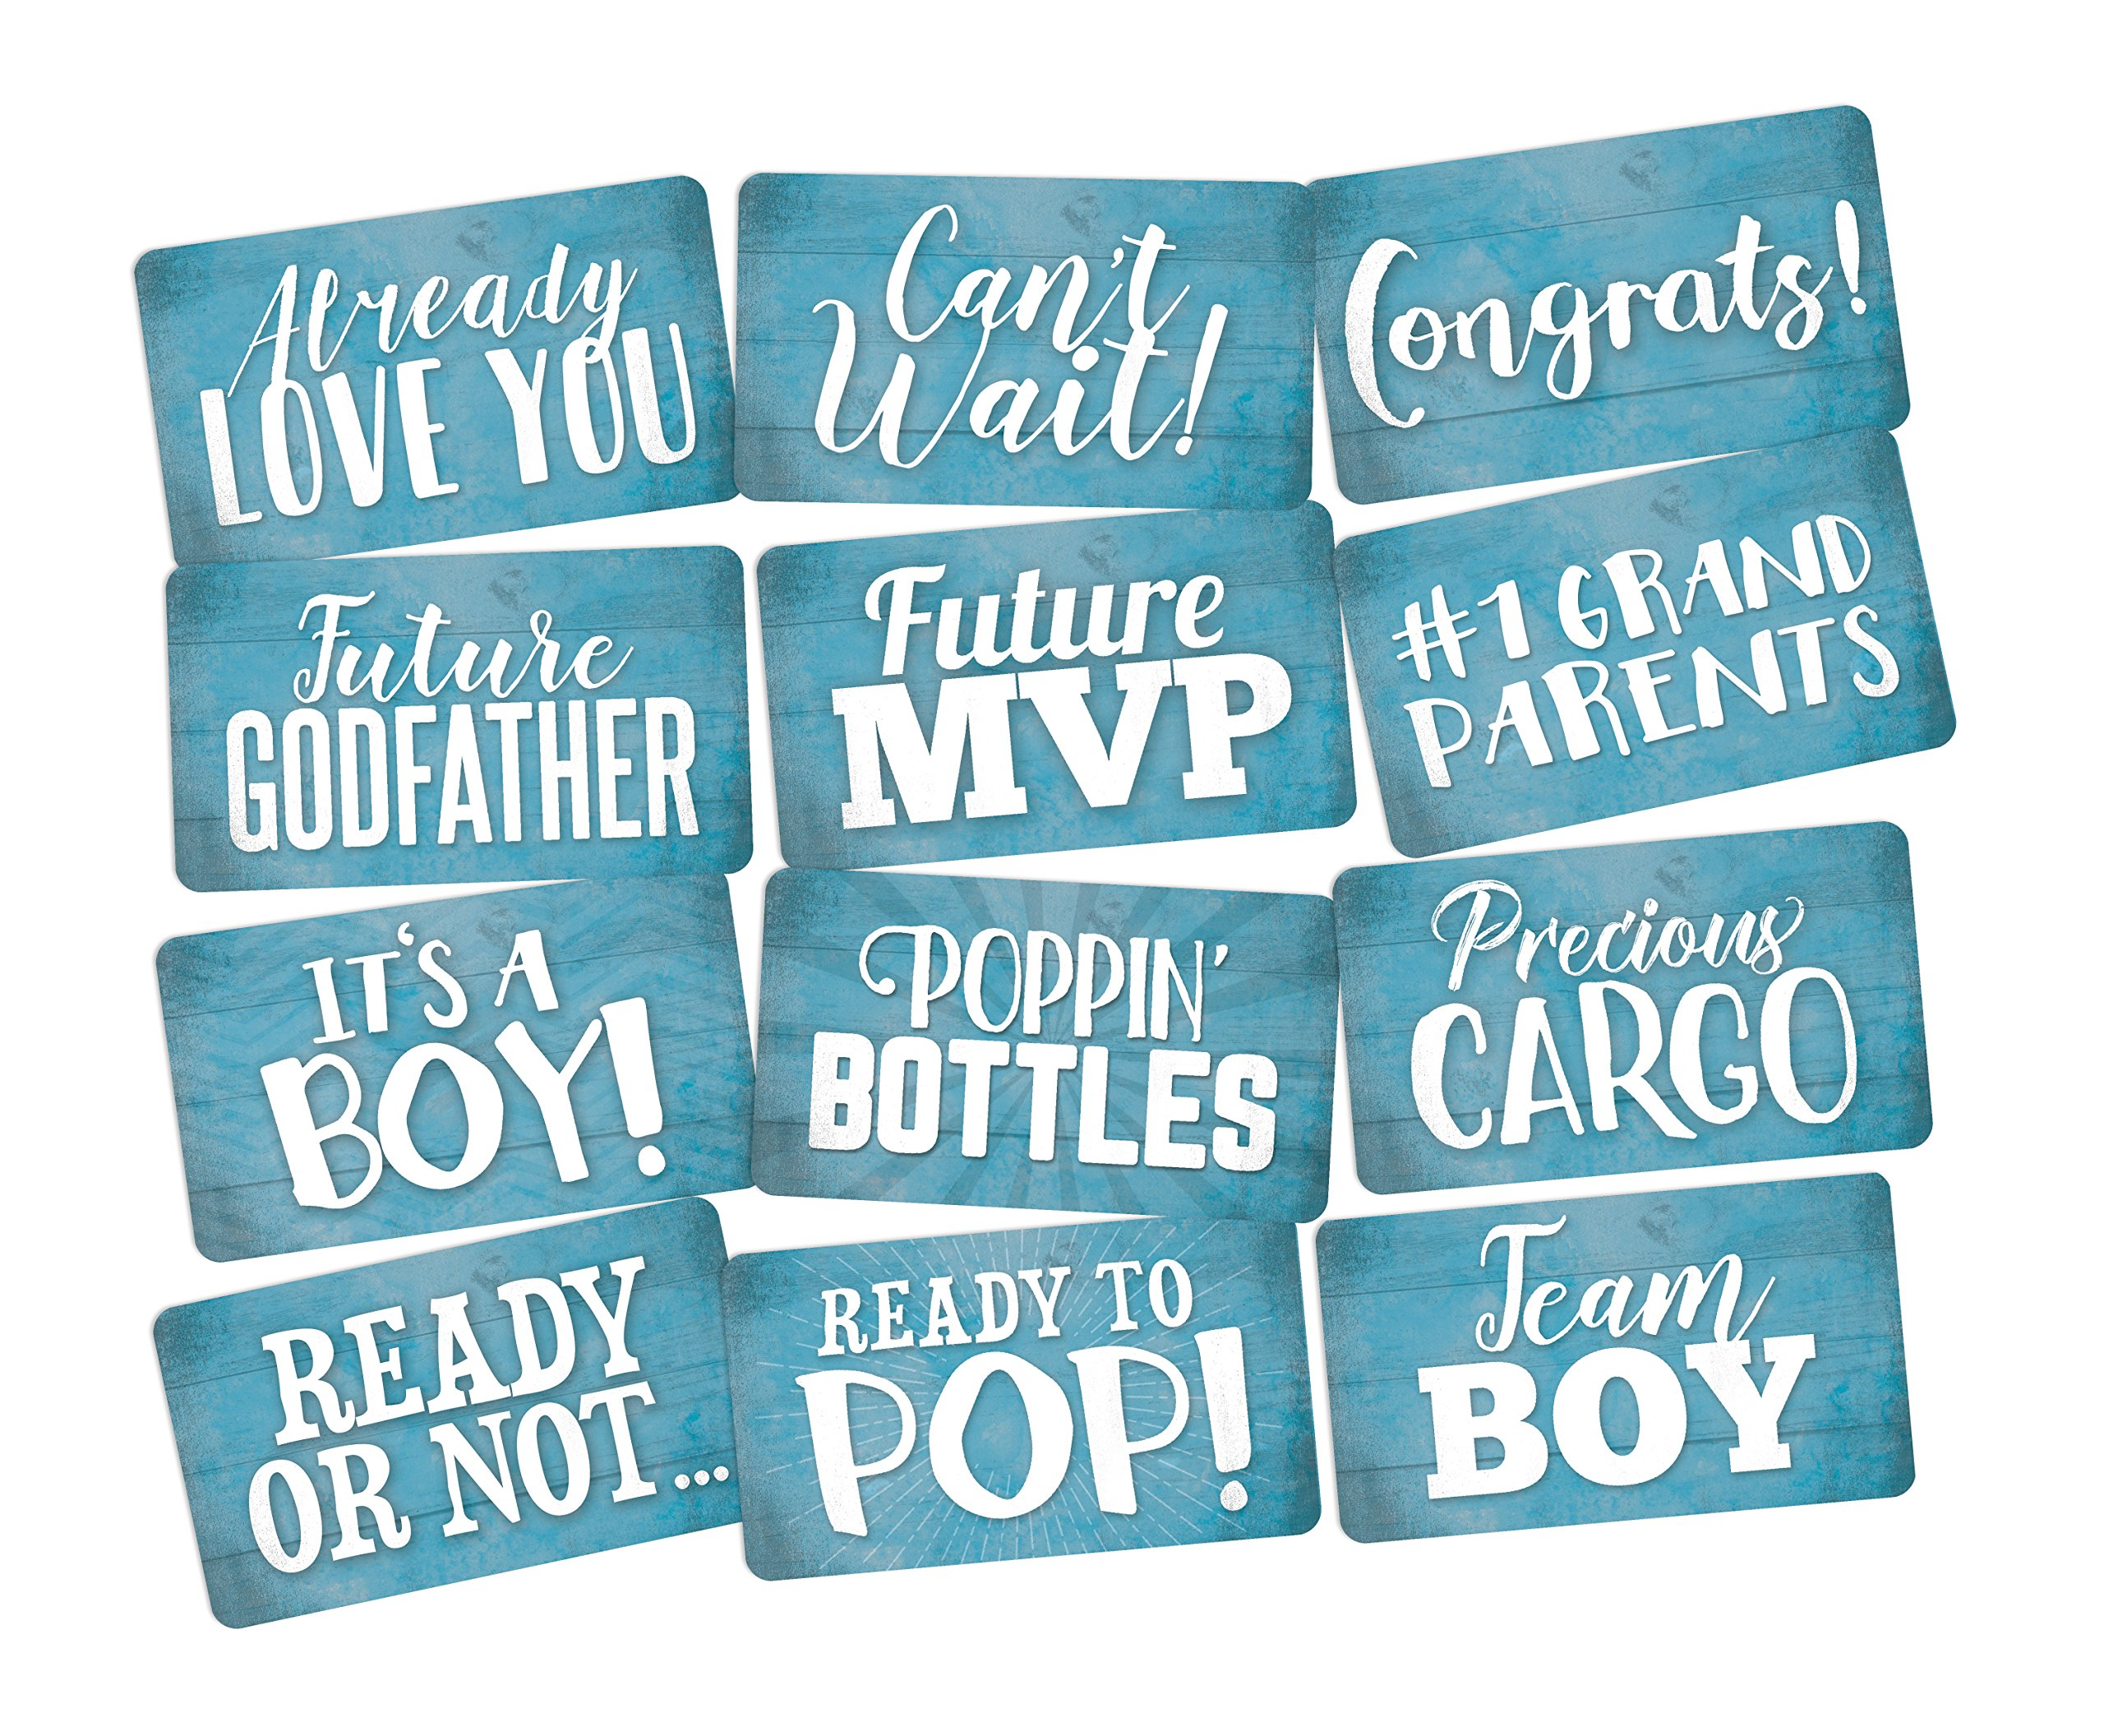 Photo Booth Props Set It's a Boy Perfect for Blue Baby Shower 6pc Double Sided by King Props LLC